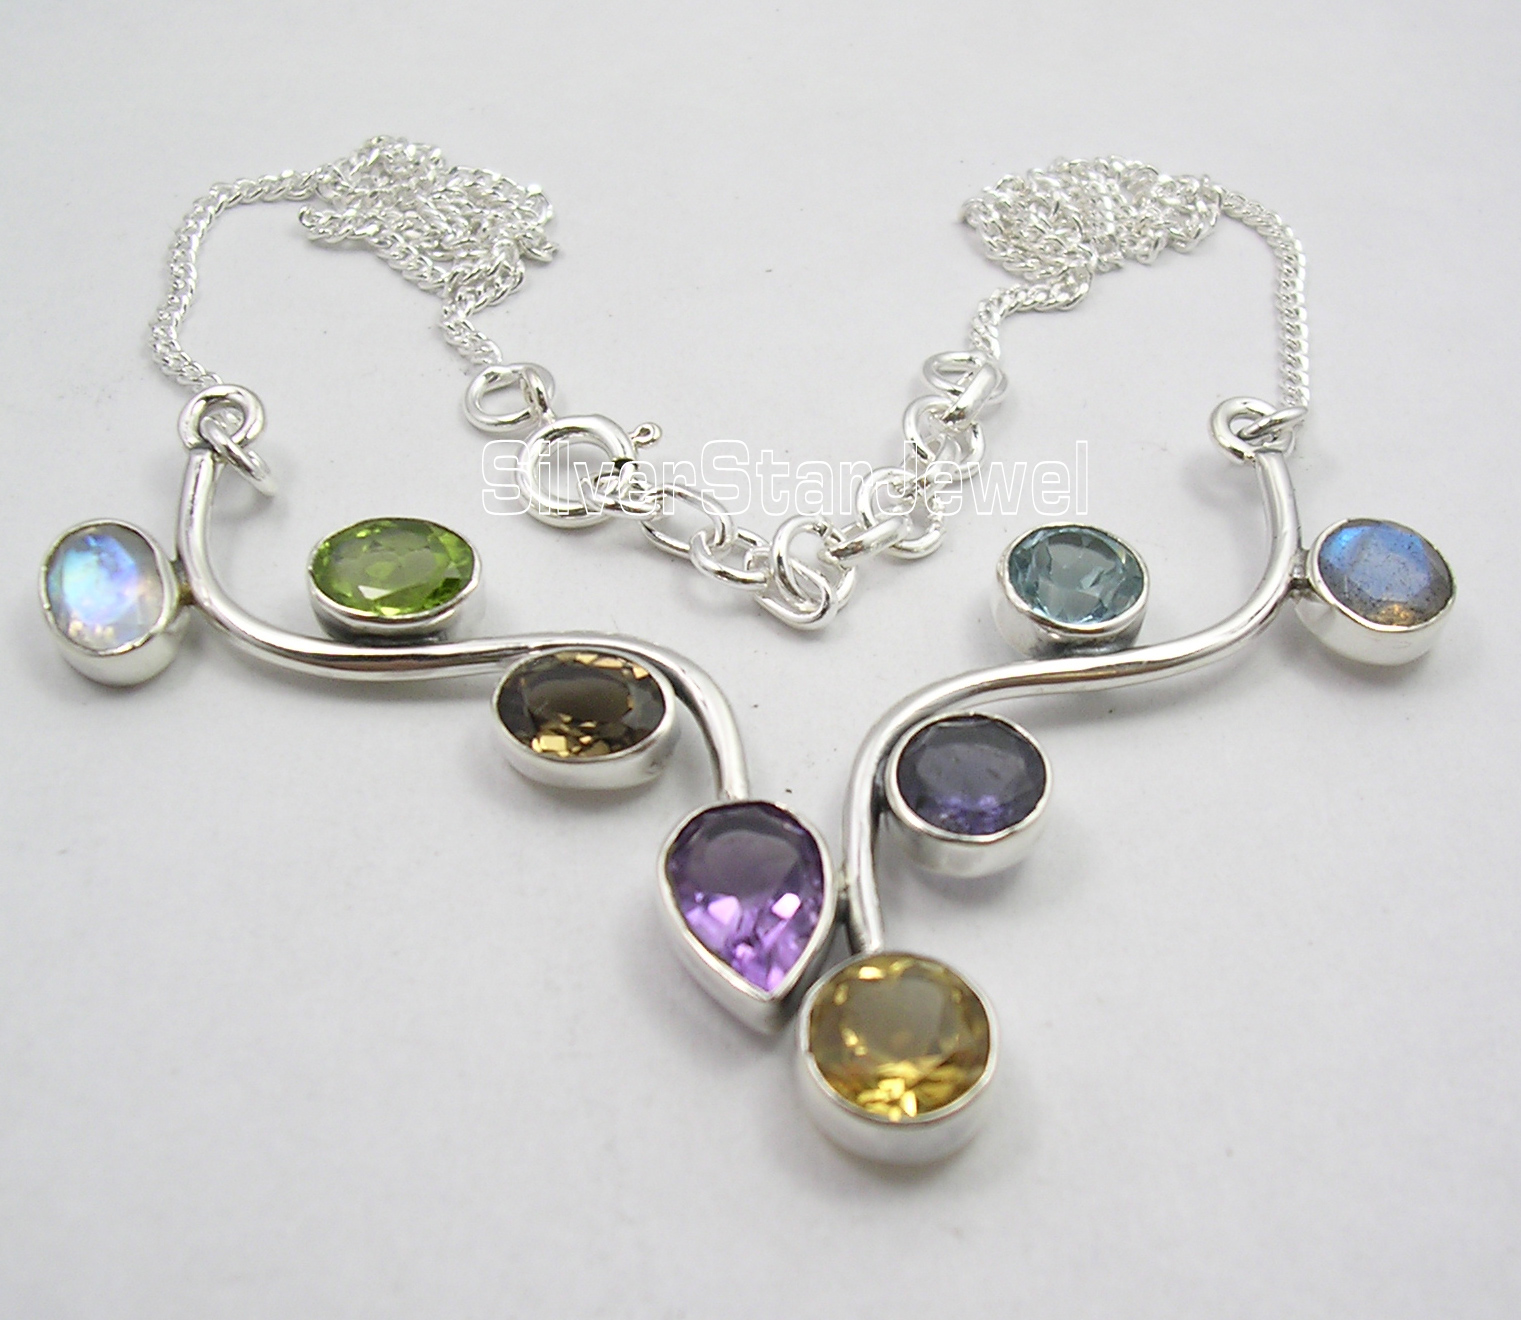 Chanti International Solid Silver MULTICOLOR Genuine MULTISTONES Necklace 16.5 Inches HANDMADE xishixiu 11 16 inches